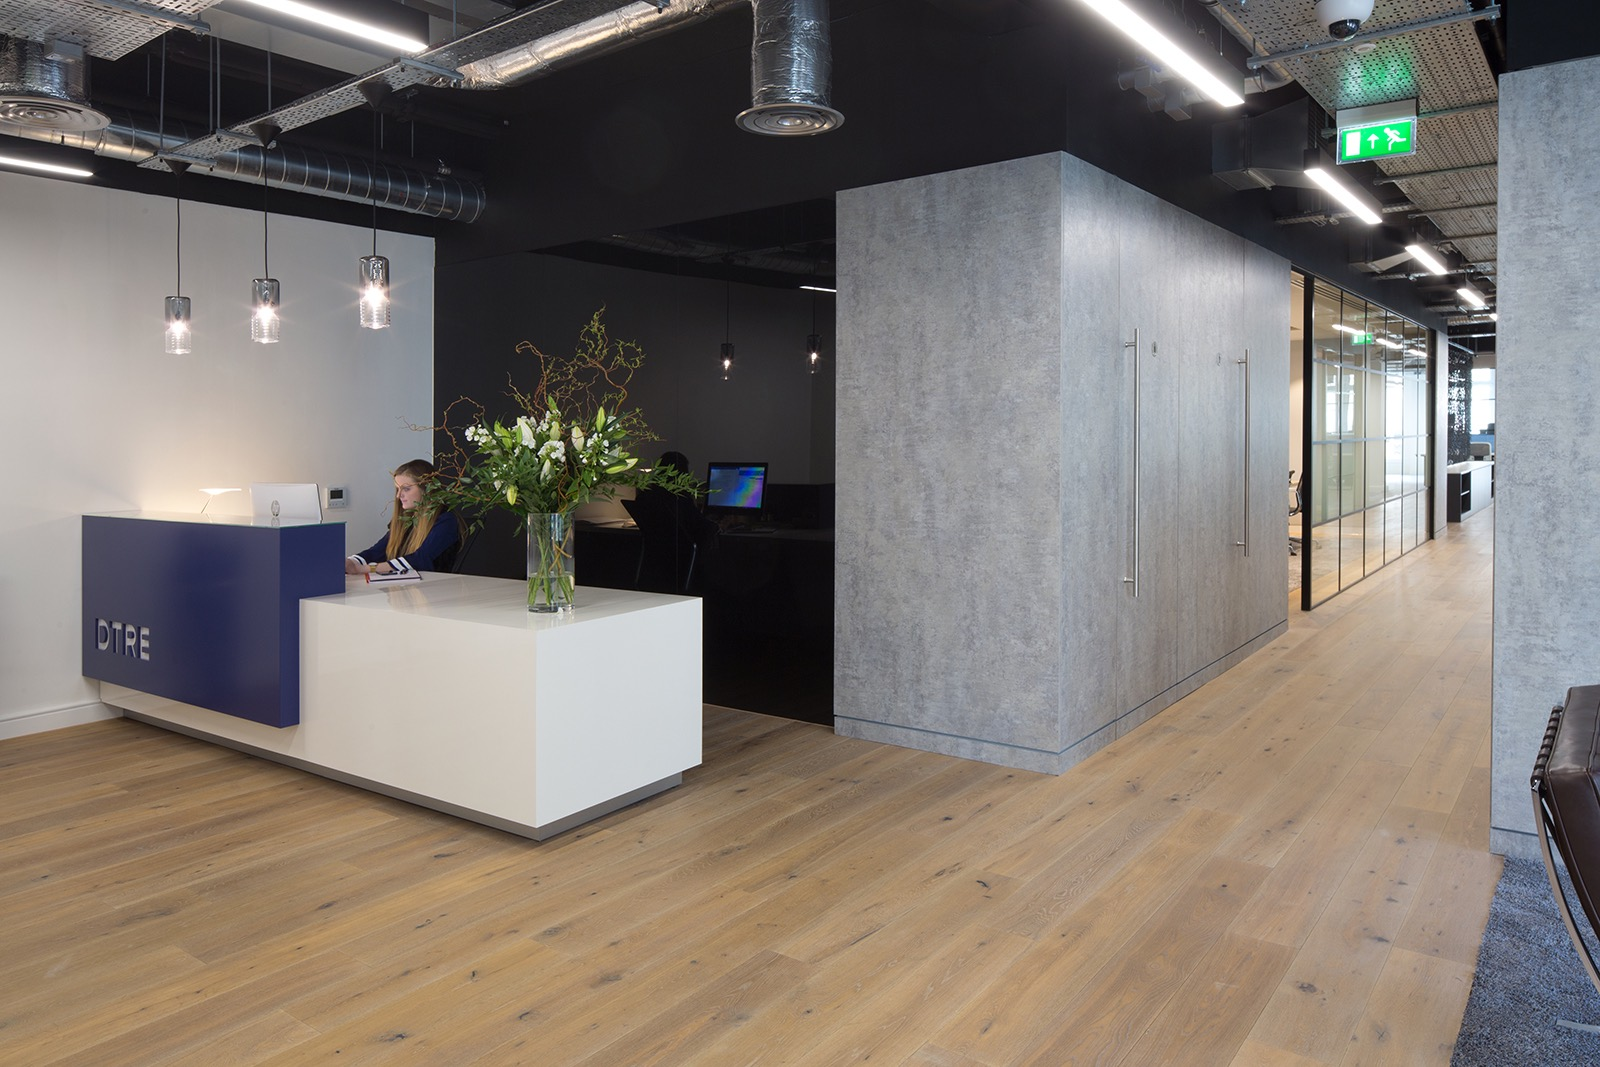 dtre-london-office-7